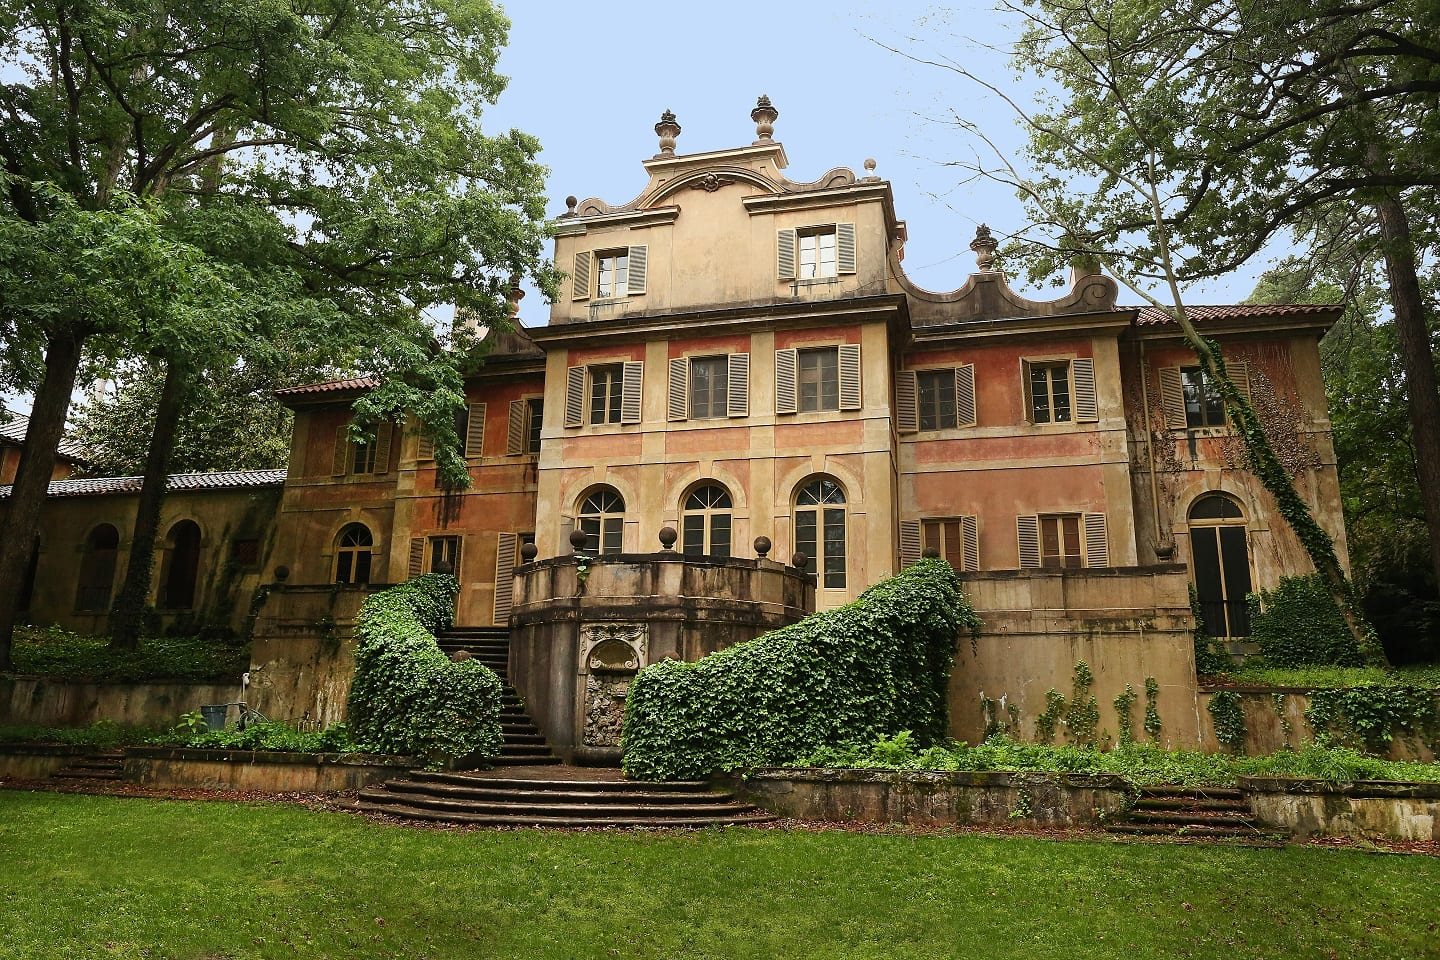 Cover story buckhead 39 s most intriguing mansions the for Estate house